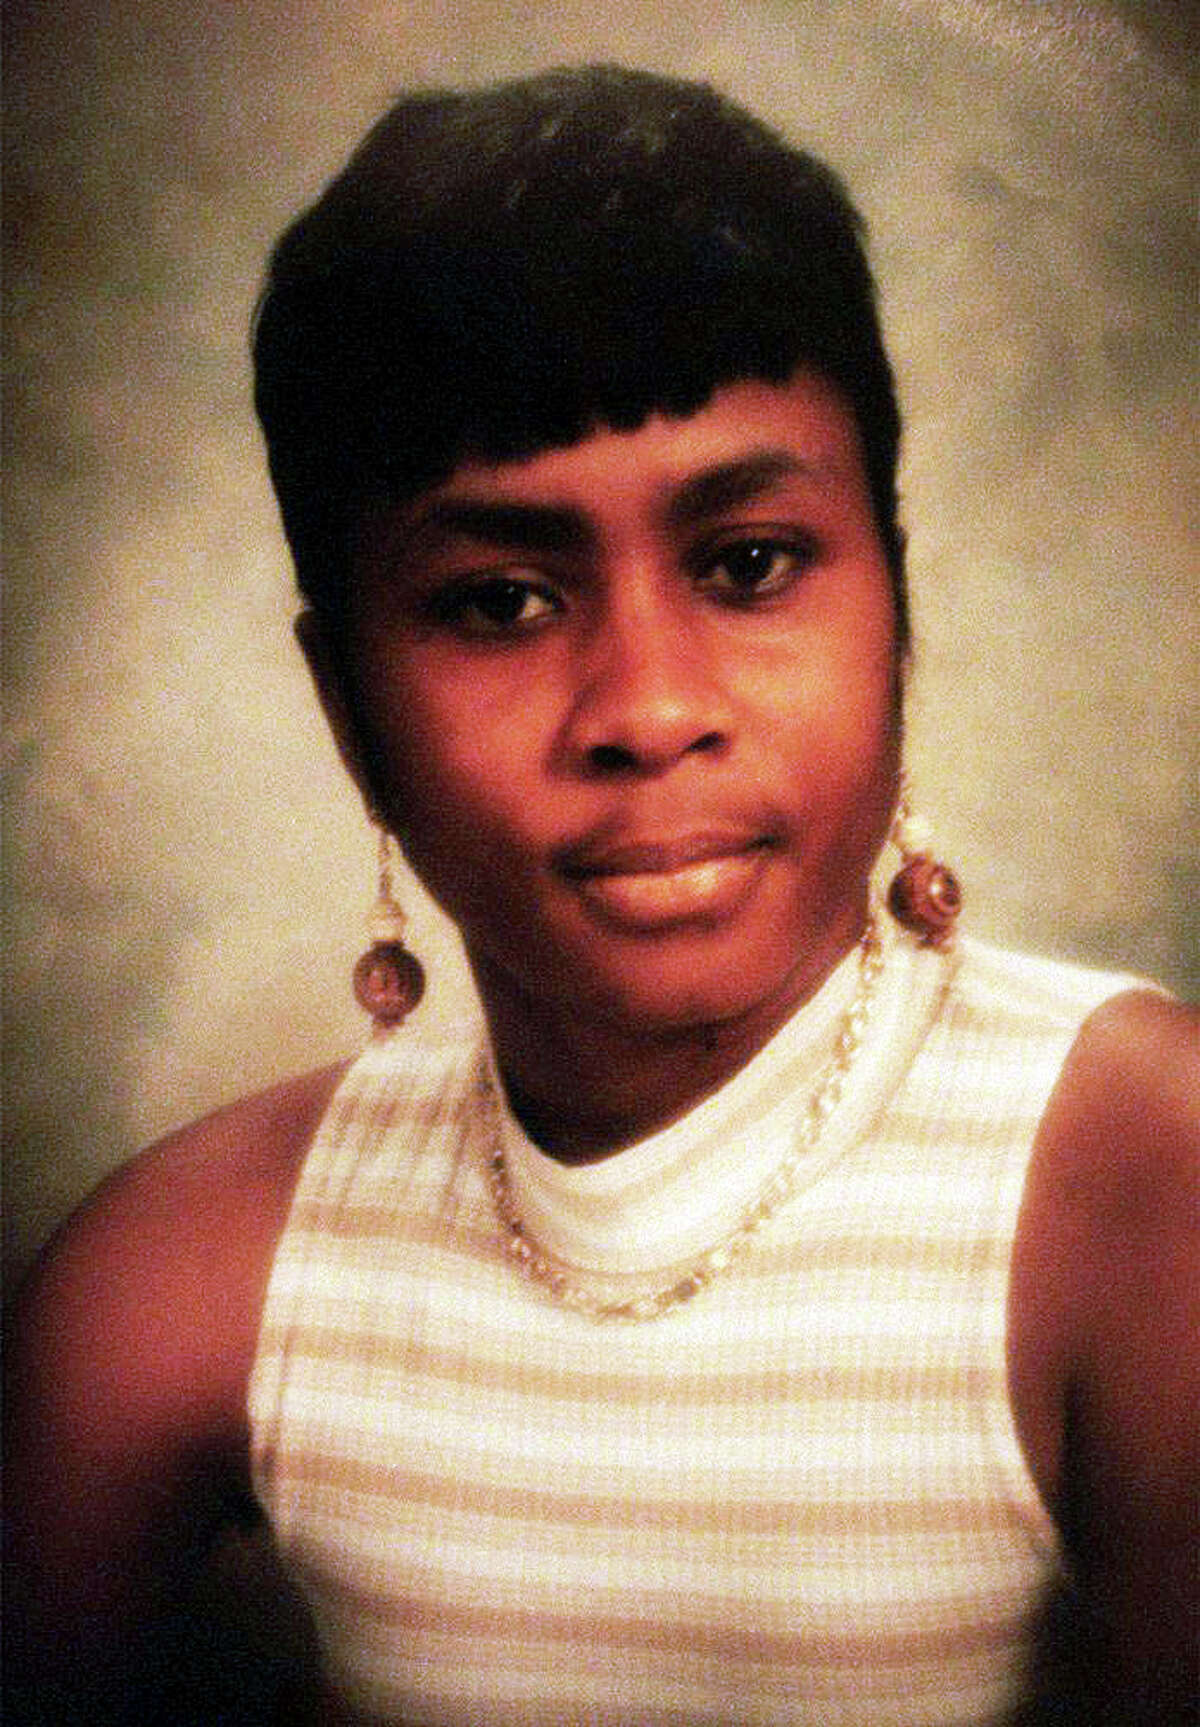 Karen Clarke, who was shot and killed along with her eight year old son, Leroy âÄúB.J.âÄù Brown, in their Bridgeport, Conn. duplex on January 8, 1999.